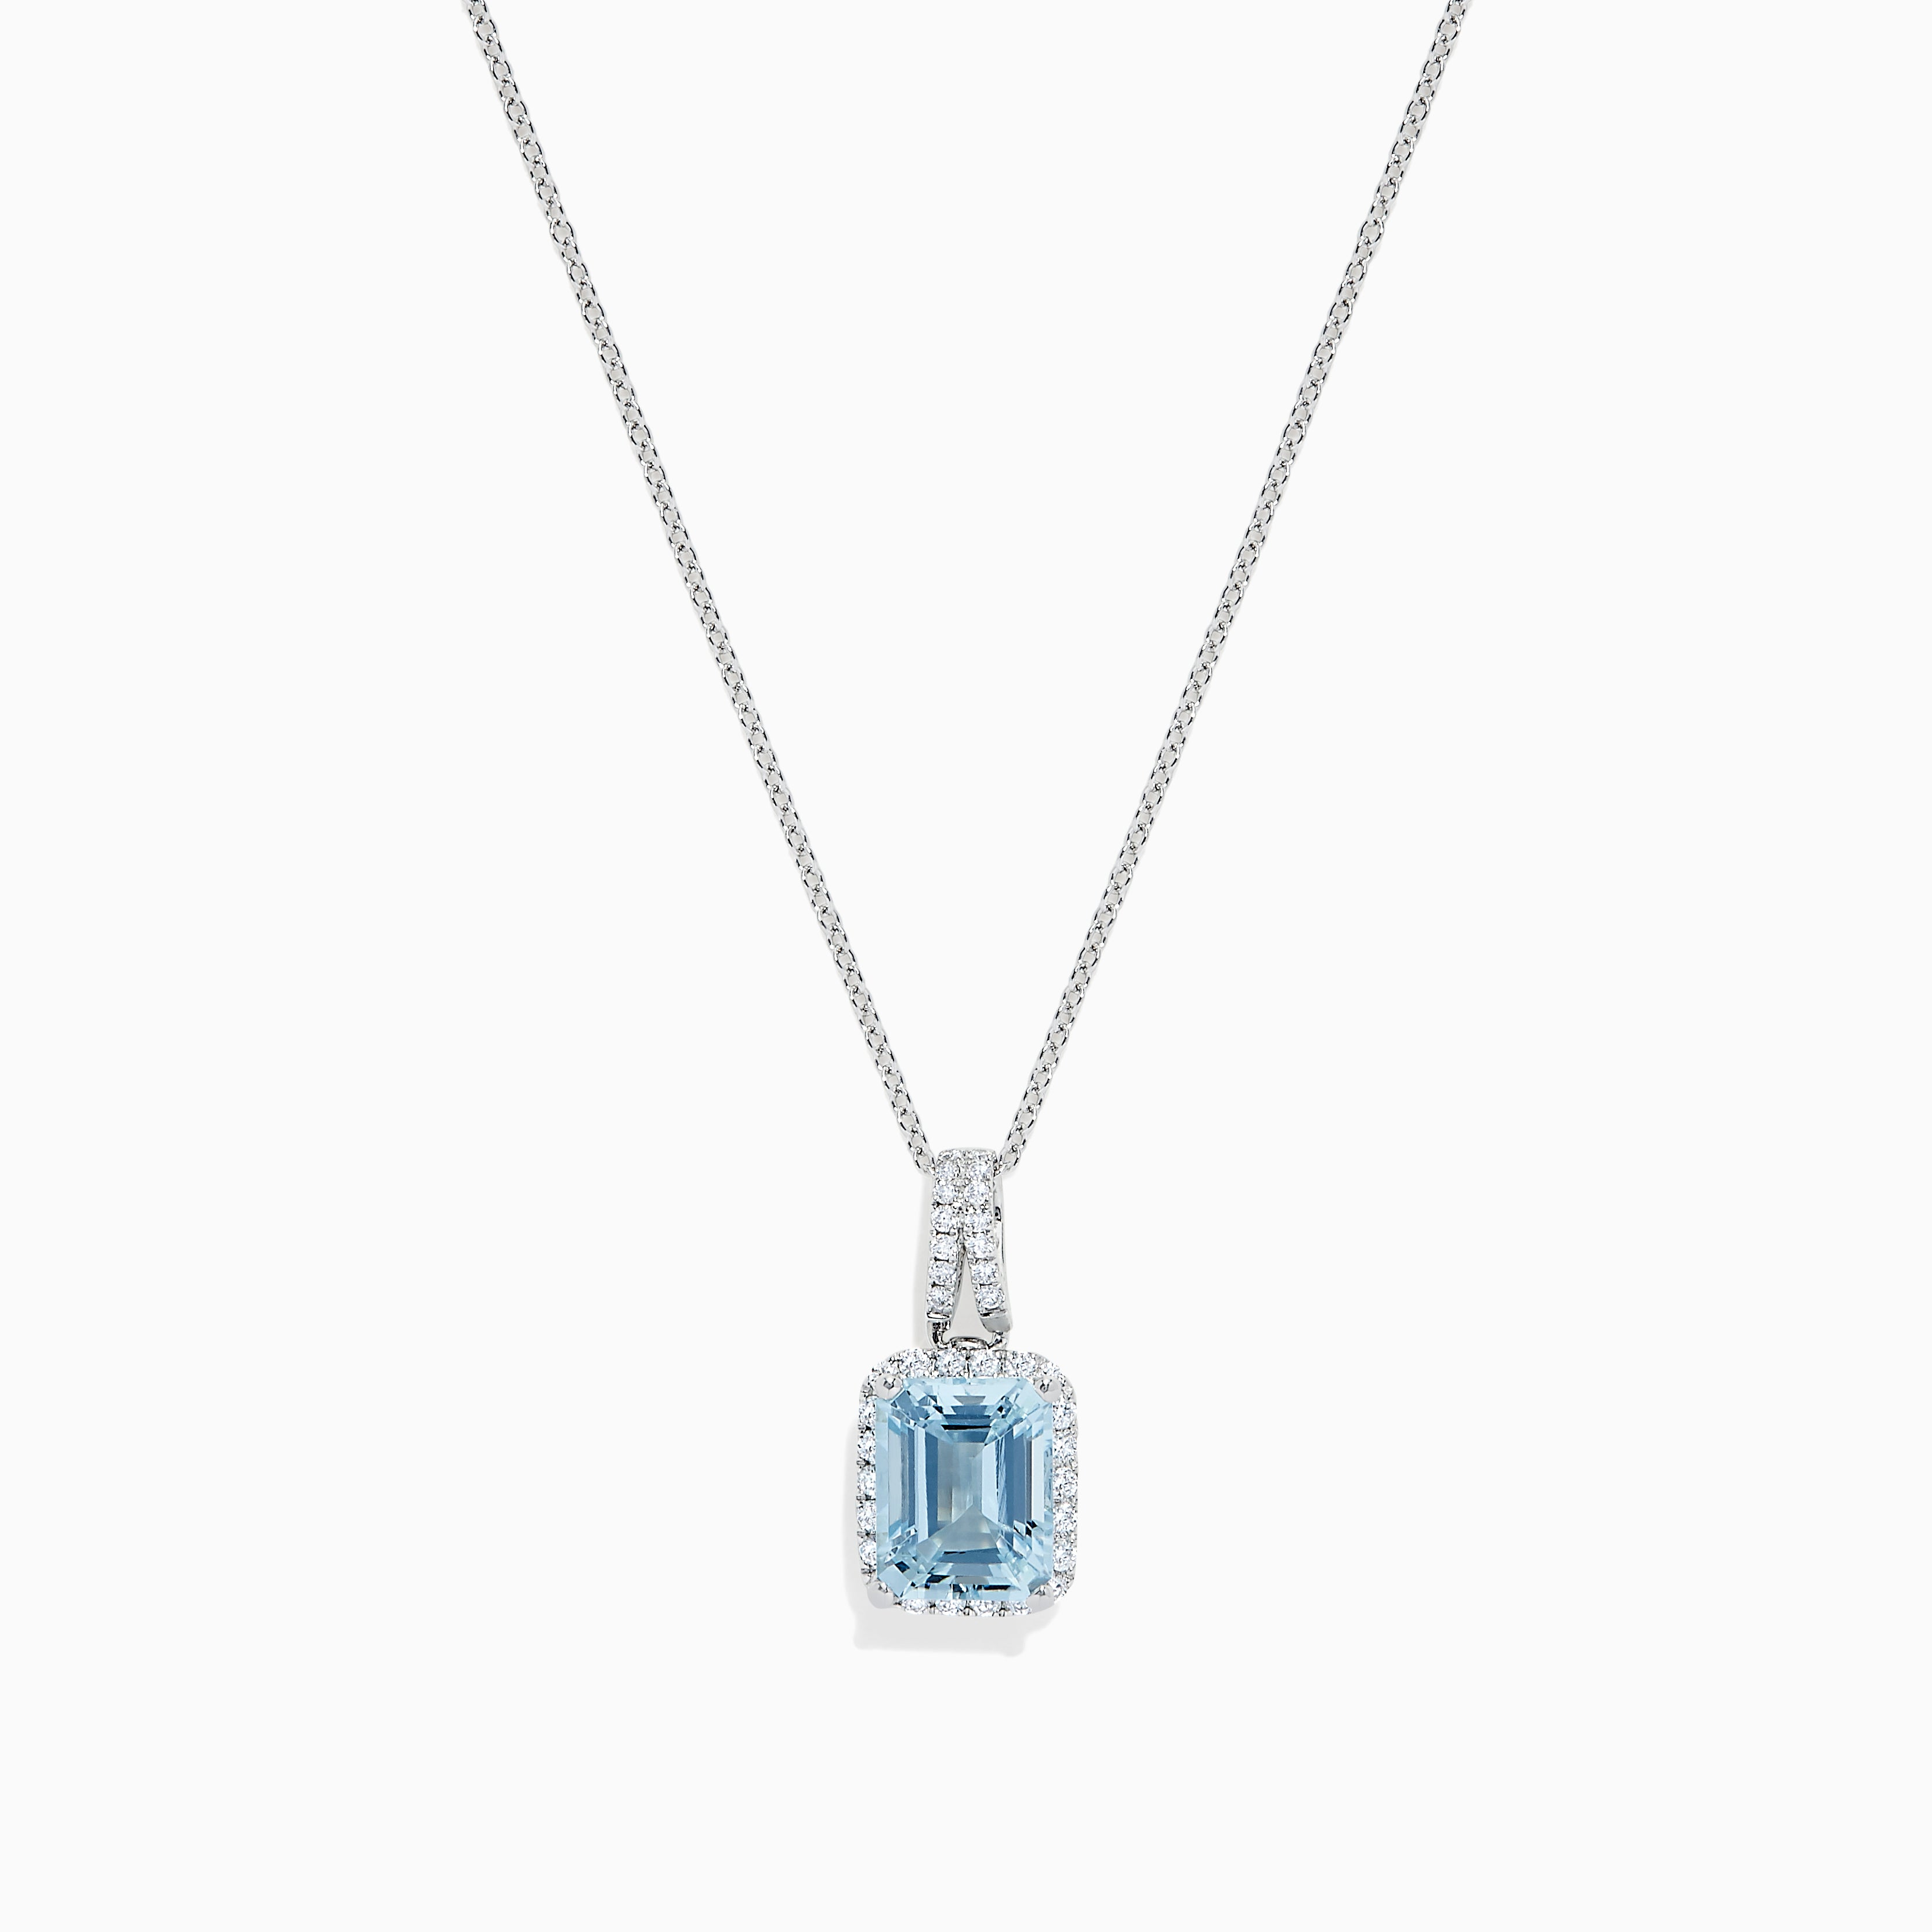 Effy Aquarius 14K White Gold Aquamarine and Diamond Pendant, 2.62 TCW